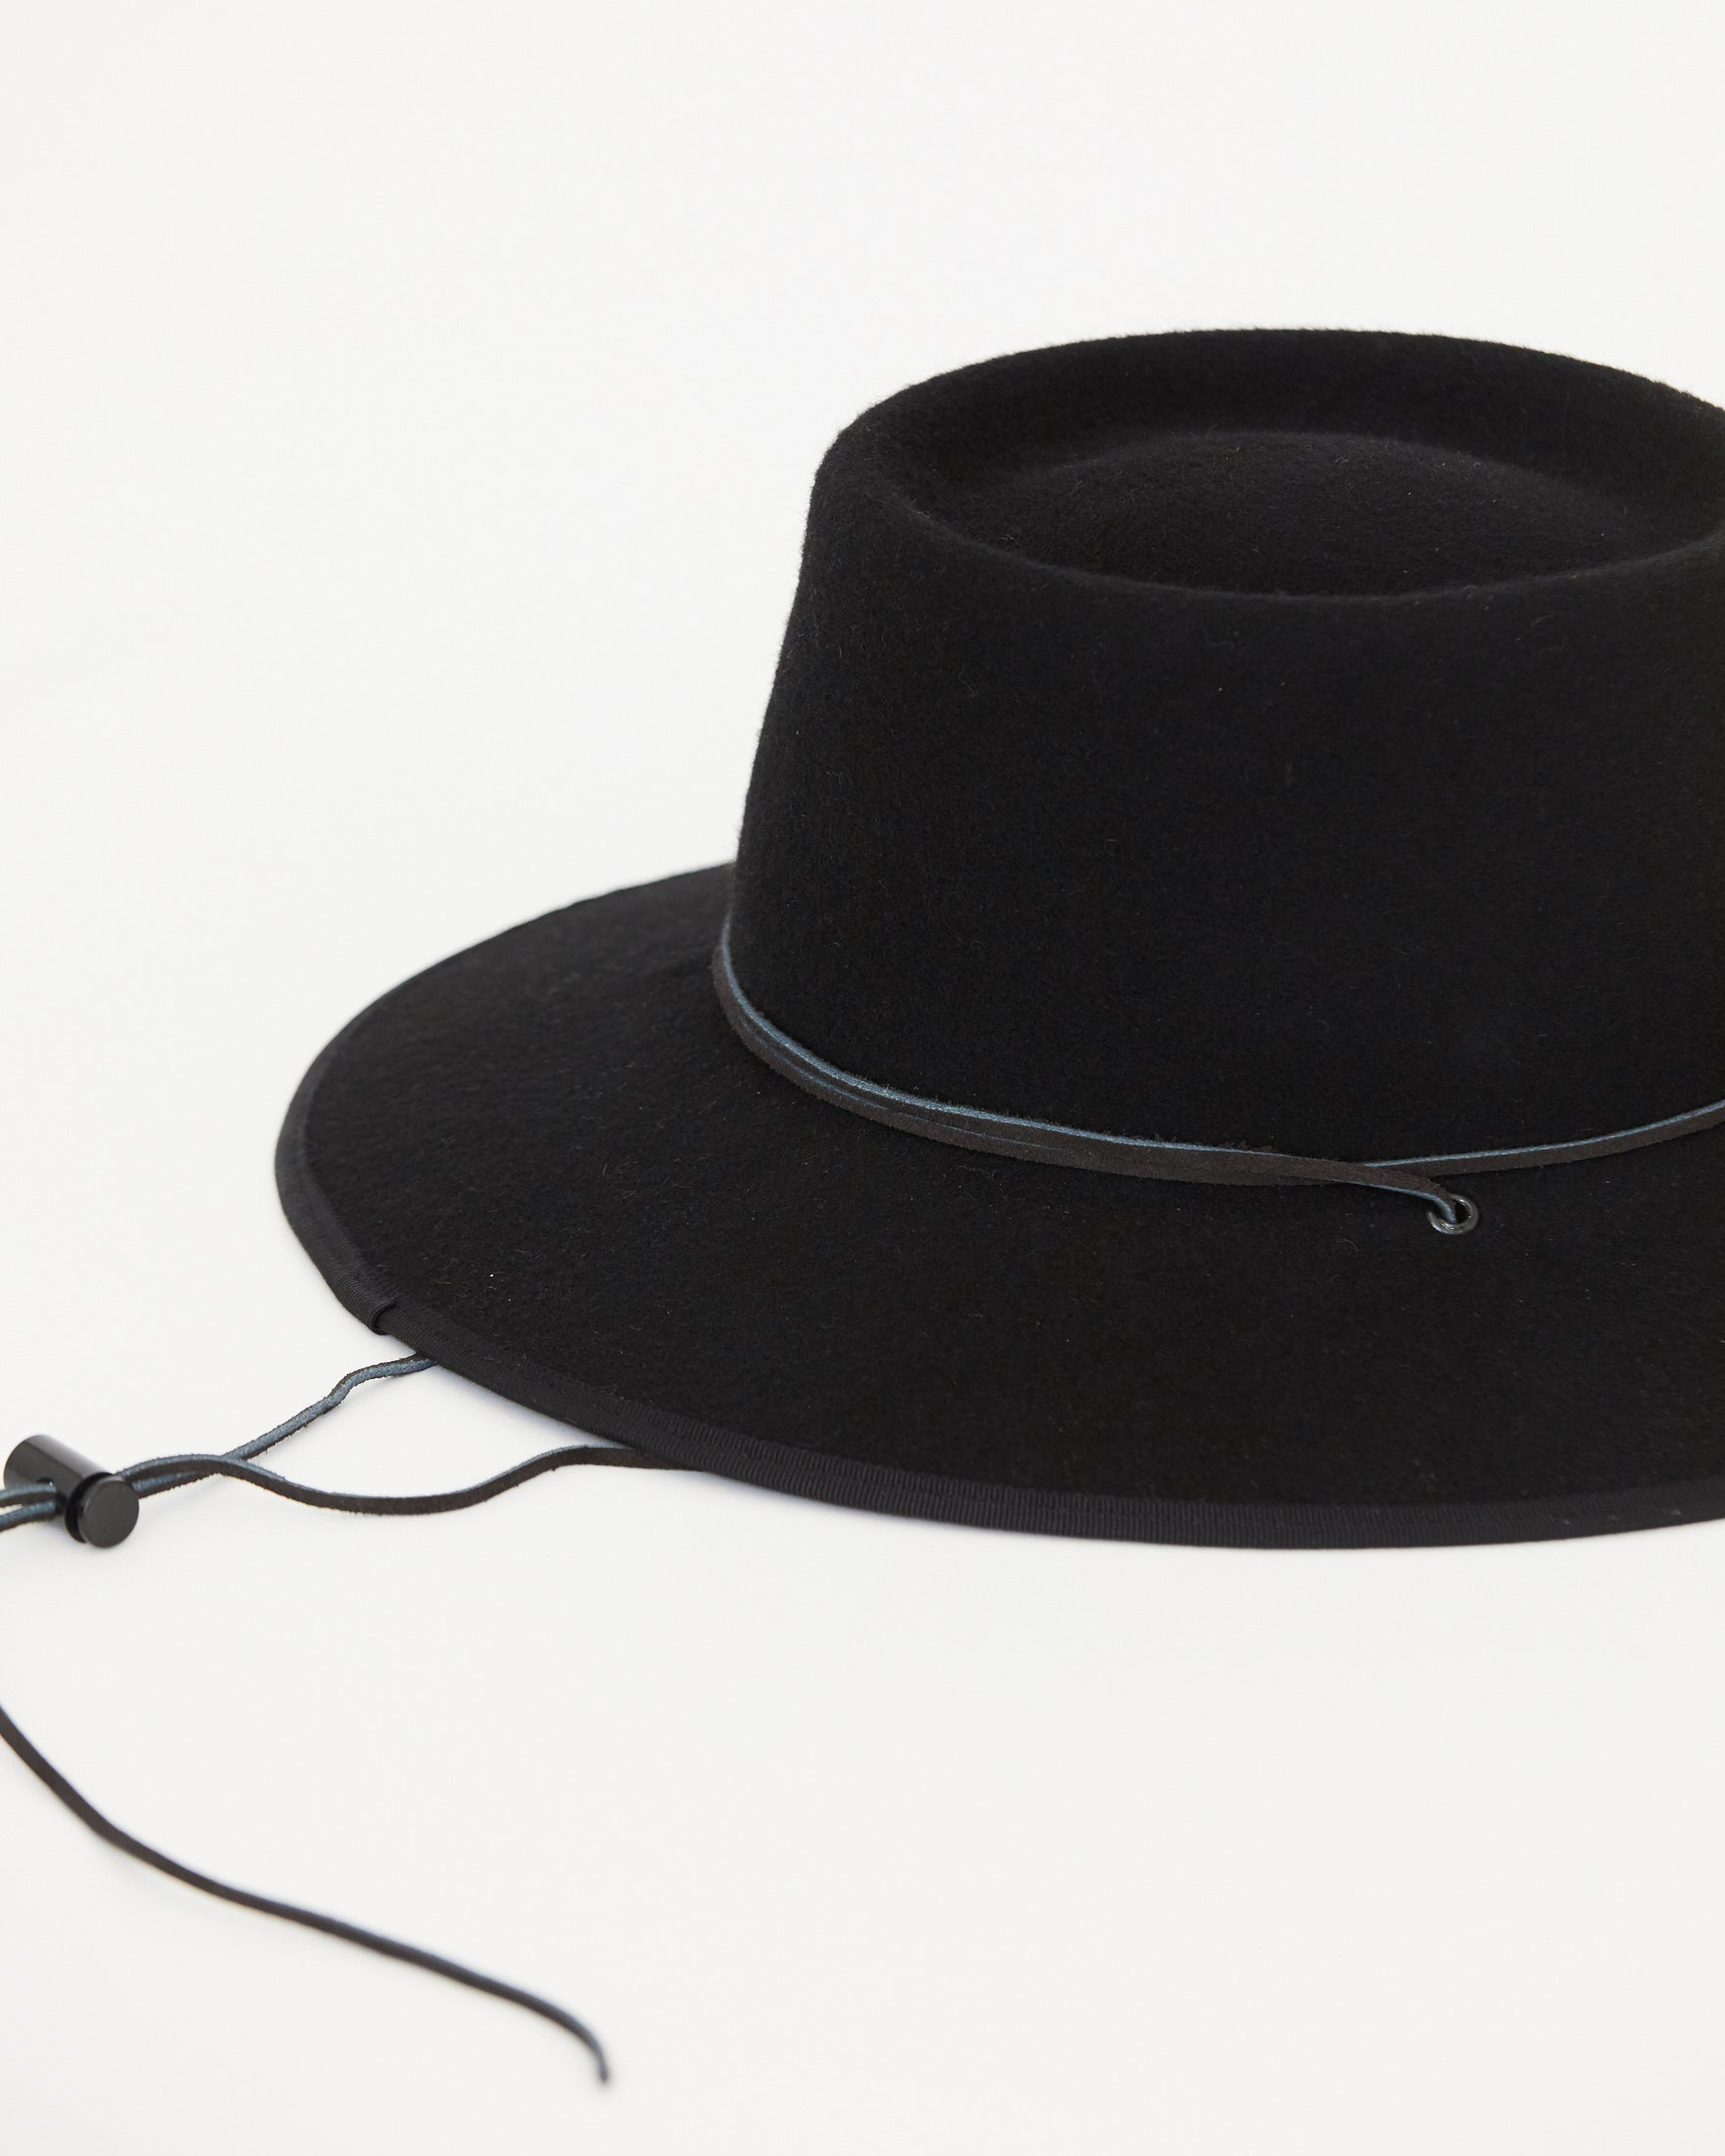 BROOKES BOSWELL - ALDERMAN HAT - BLACK WOOL FELT